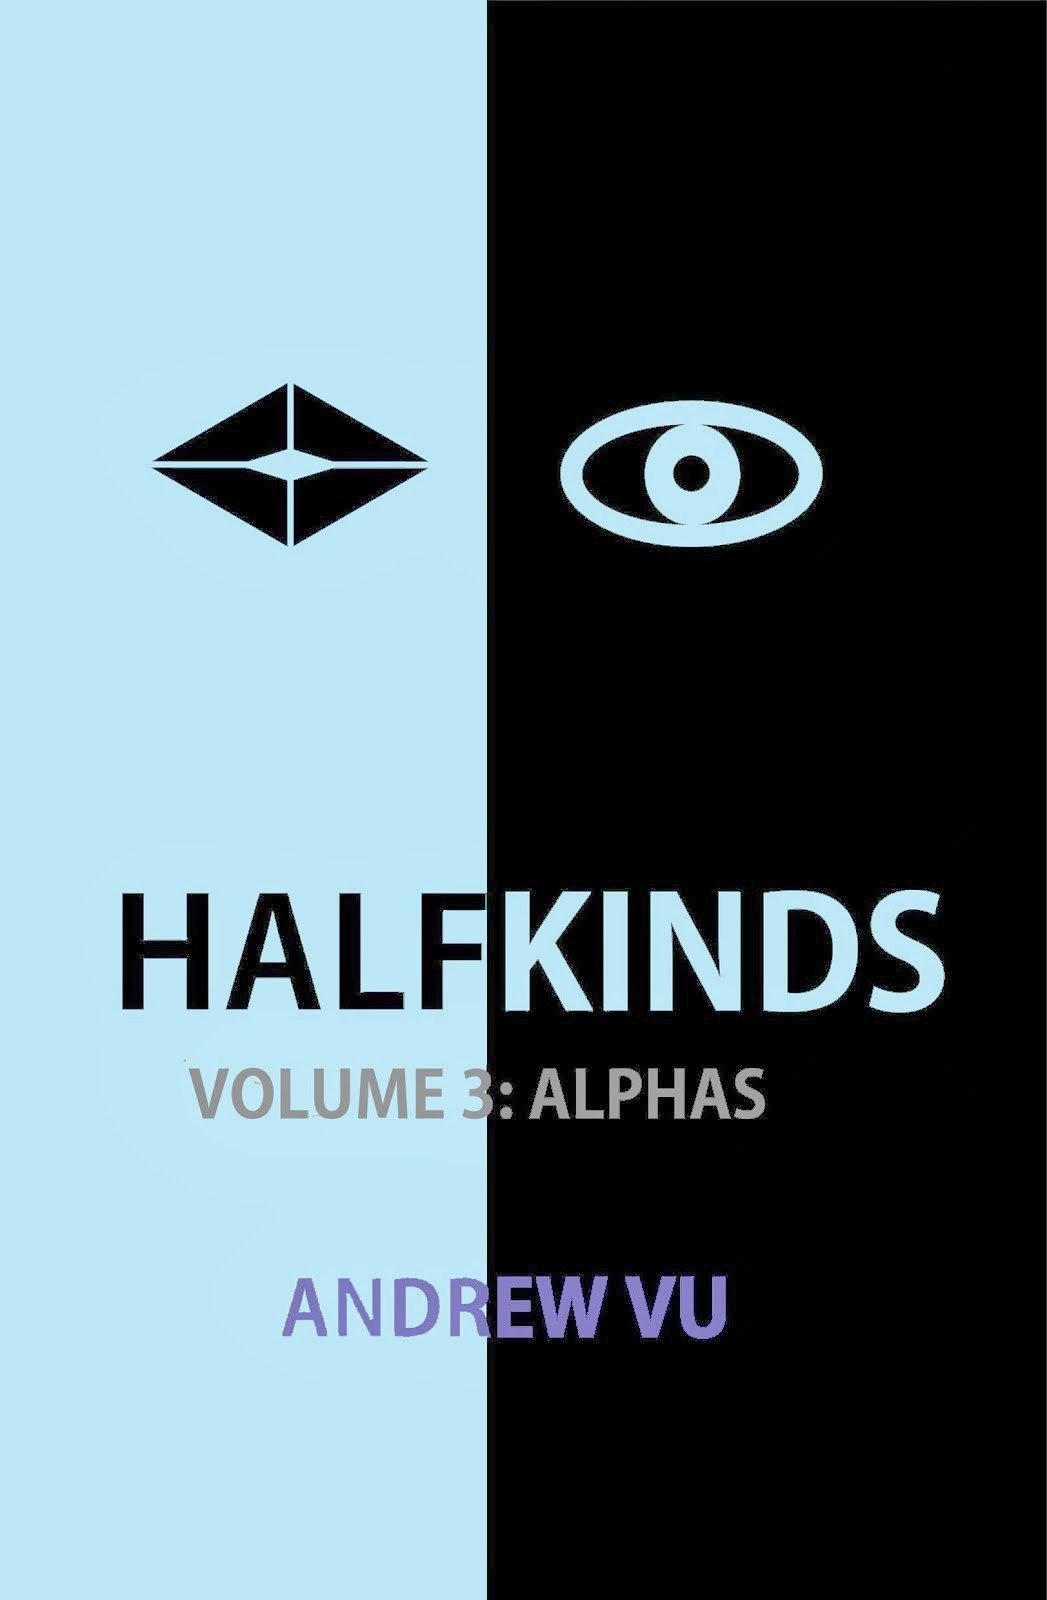 Halfkinds Volume 3: Alphas